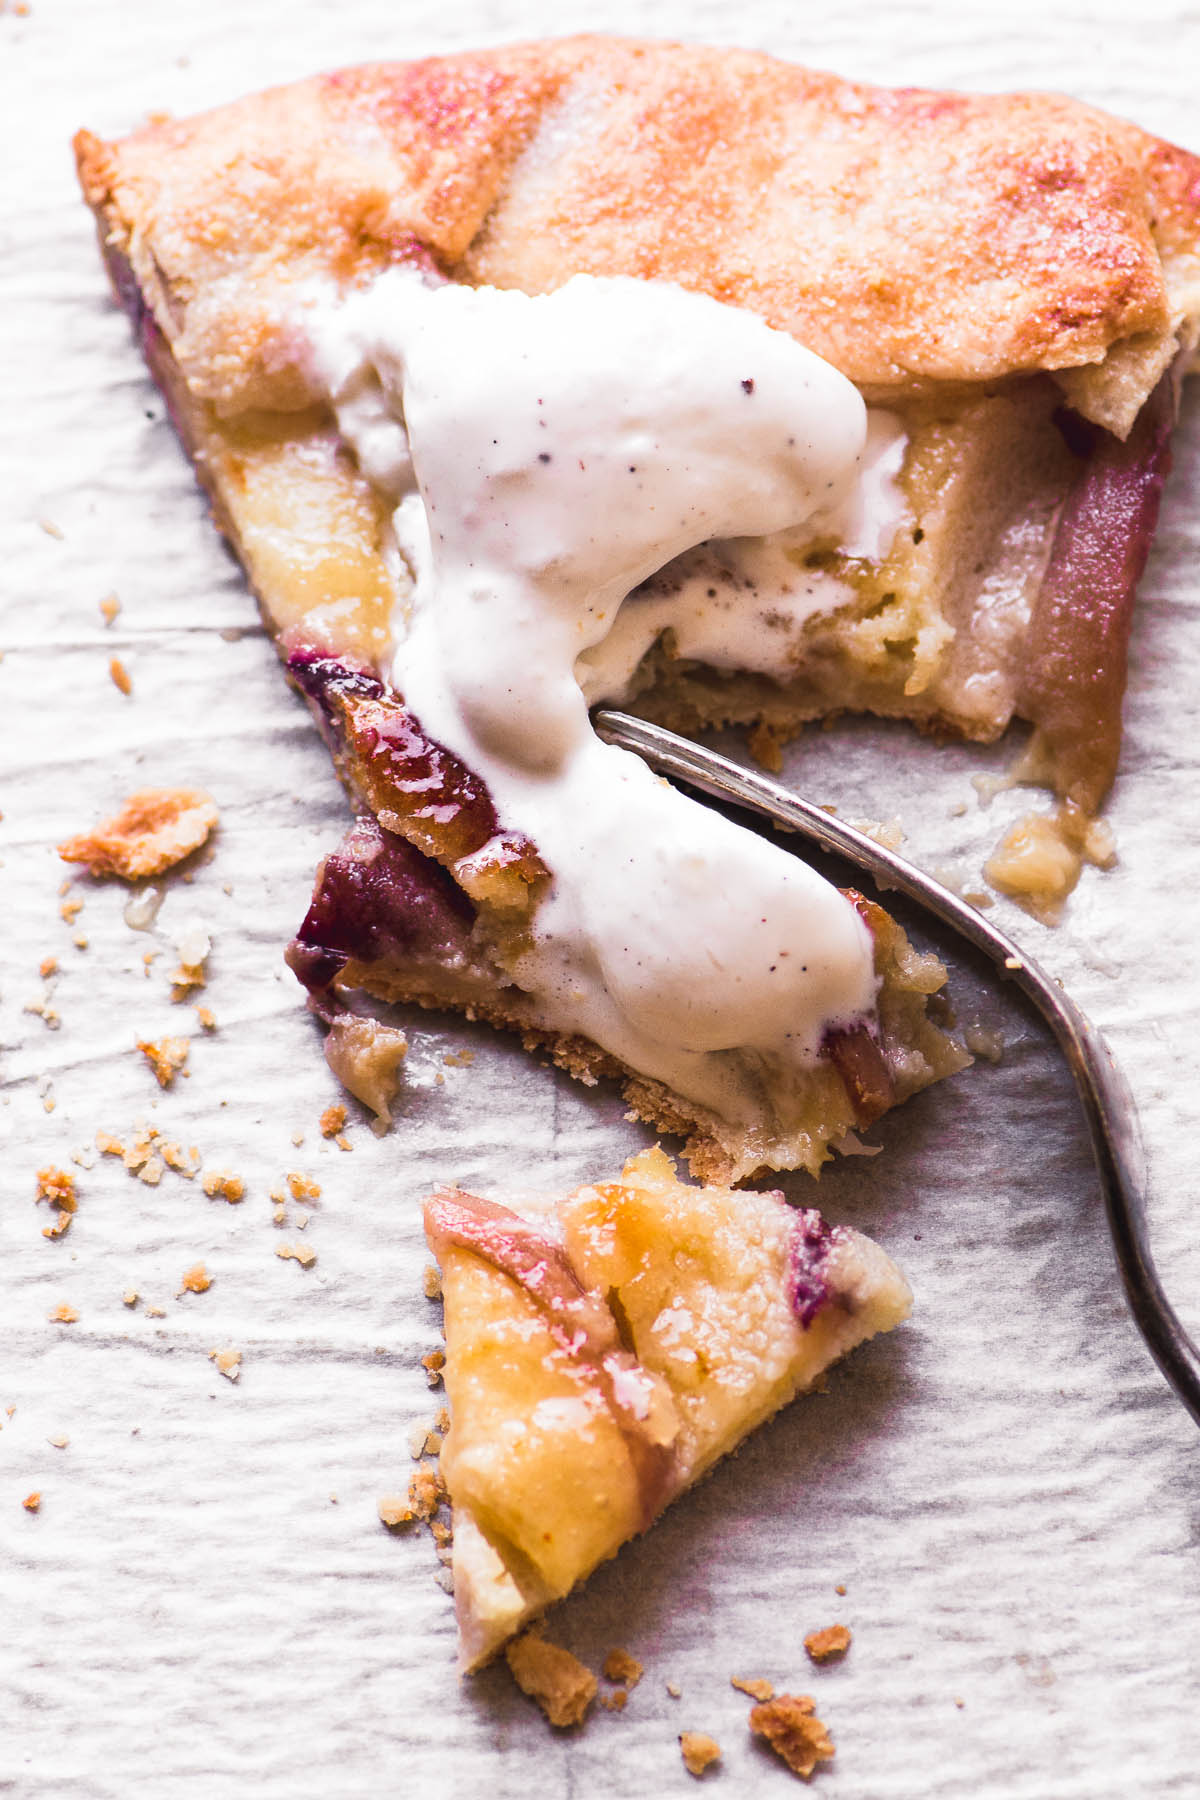 A slice of white peach frangipane galette with melting ice cream and fork